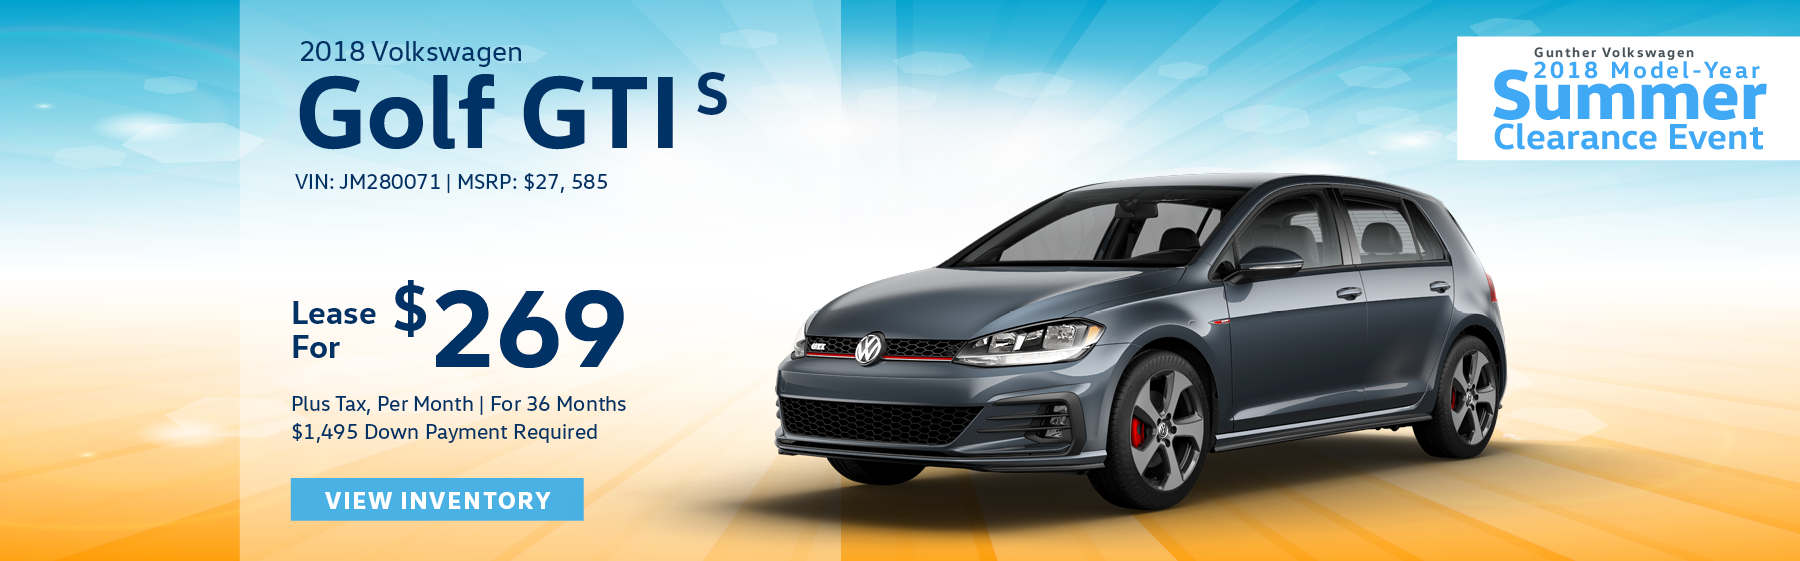 Lease the 2018 Volkswagen Golf GTI S for $269 per month, plus tax for 36 months. Click here to view inventory.